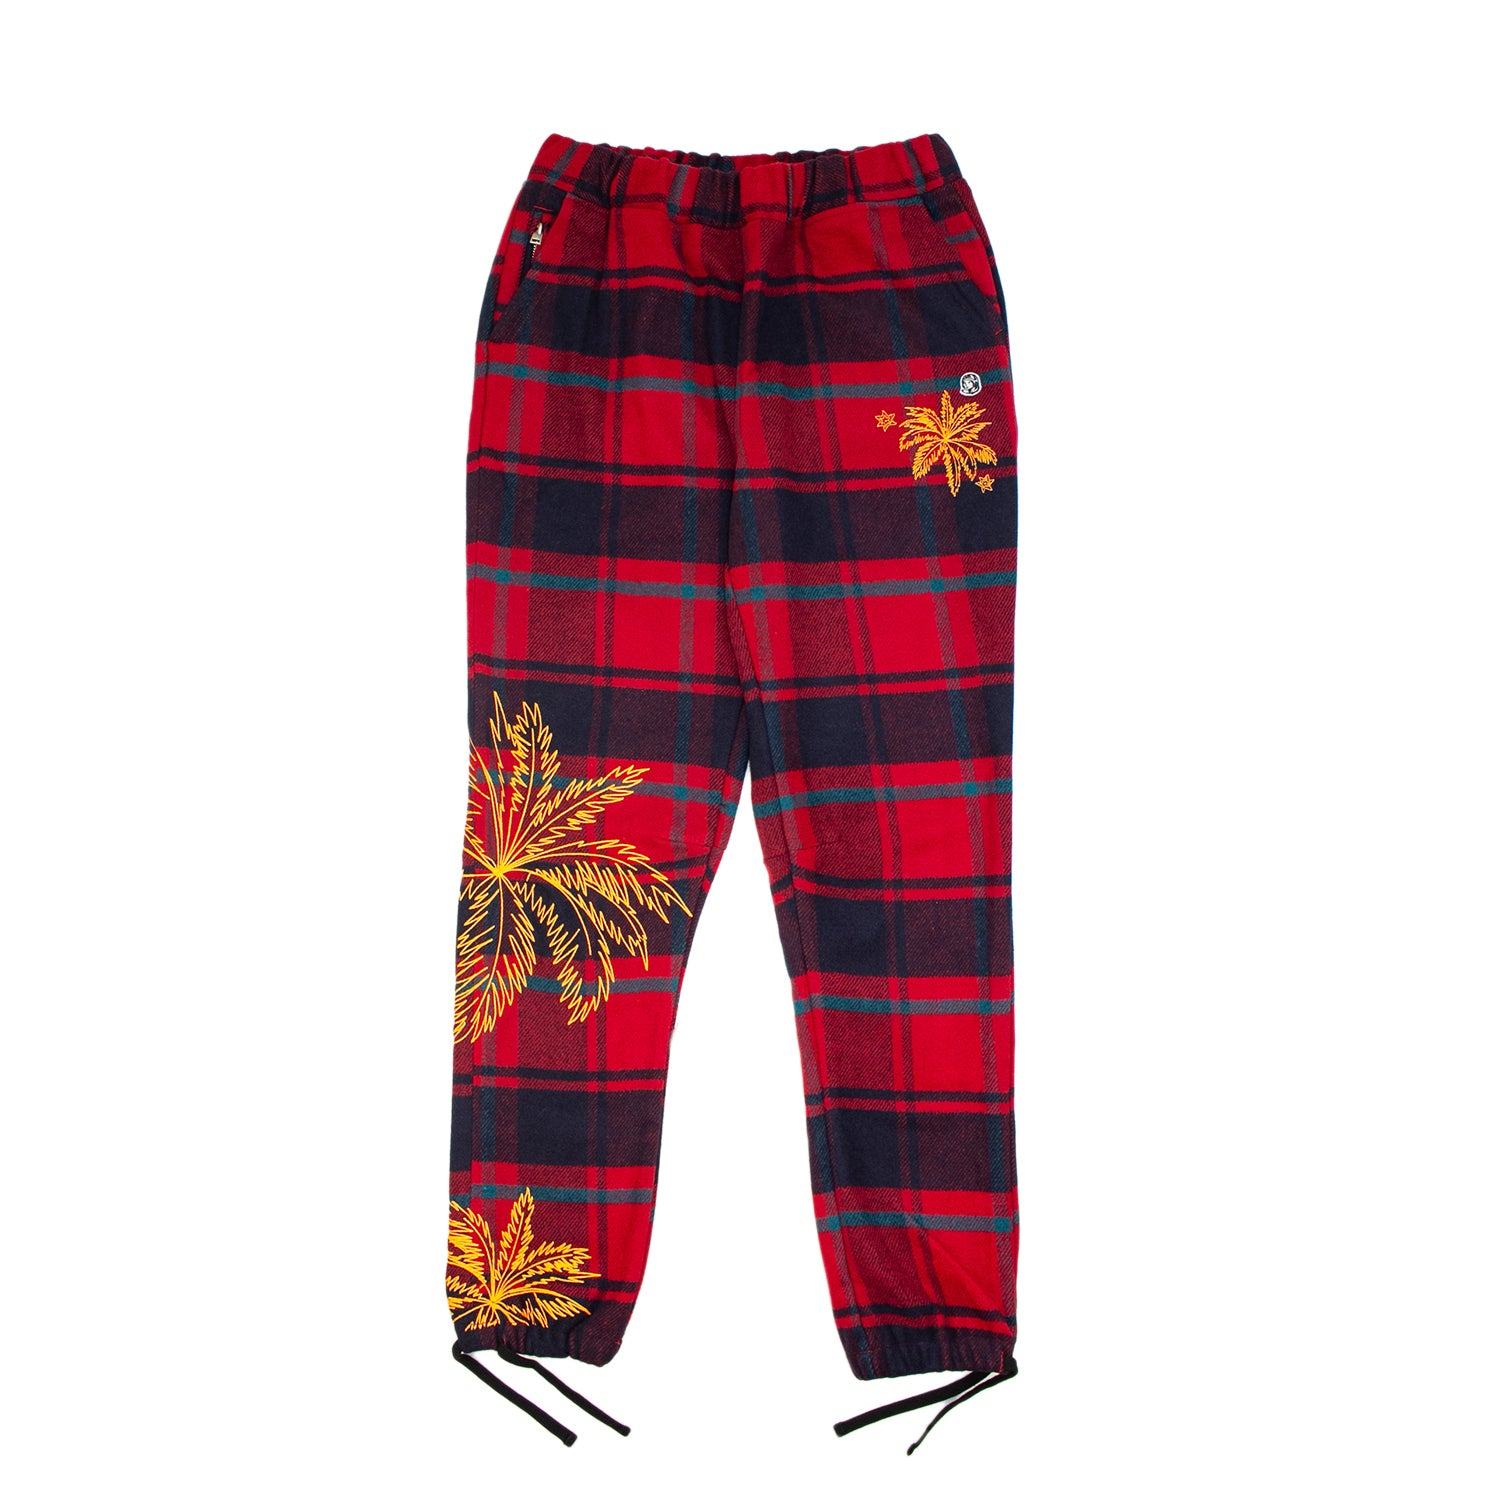 SUNRISE PLAID PANT